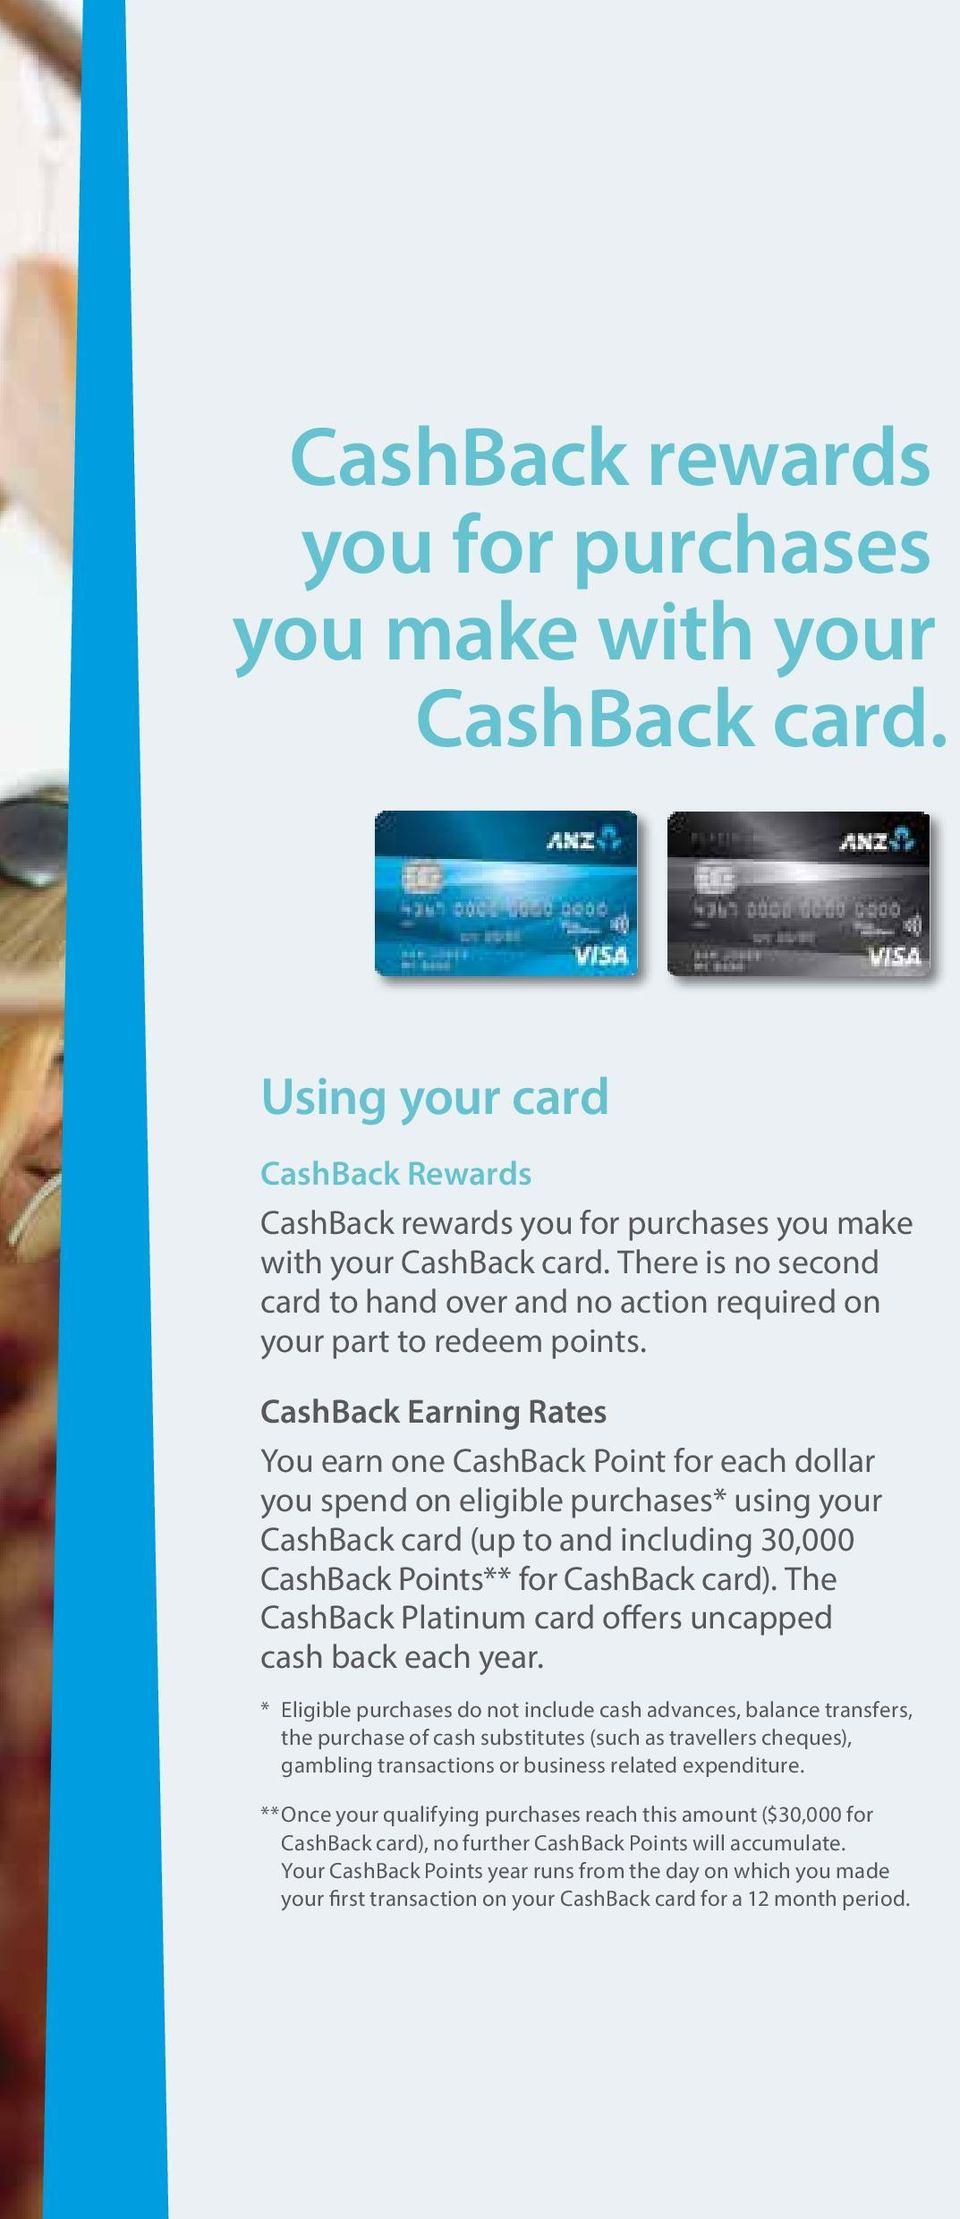 CashBack Earning Rates You earn one CashBack Point for each dollar you spend on eligible purchases* using your CashBack card (up to and including 30,000 CashBack Points** for CashBack card).